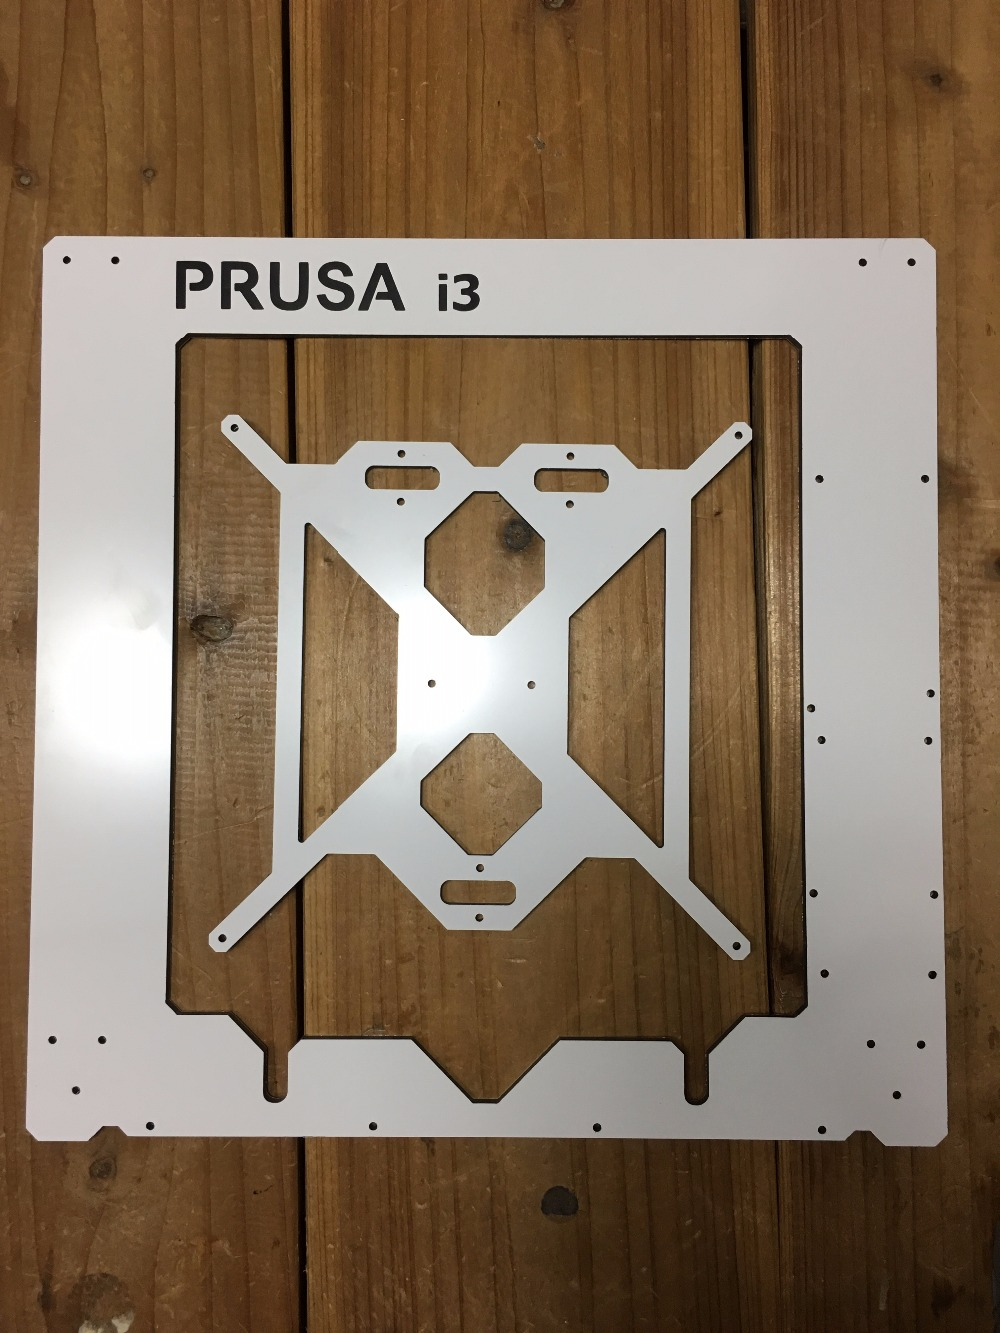 Prusa i3 Rework 3D printer aluminum composite  frame kit RepRap Prusa i3 white color composite plate frame 3D Printer DIY 6 mm new anet e10 e12 3d printer diy kit aluminum frame multi language large printing size high precision reprap i3 with filament